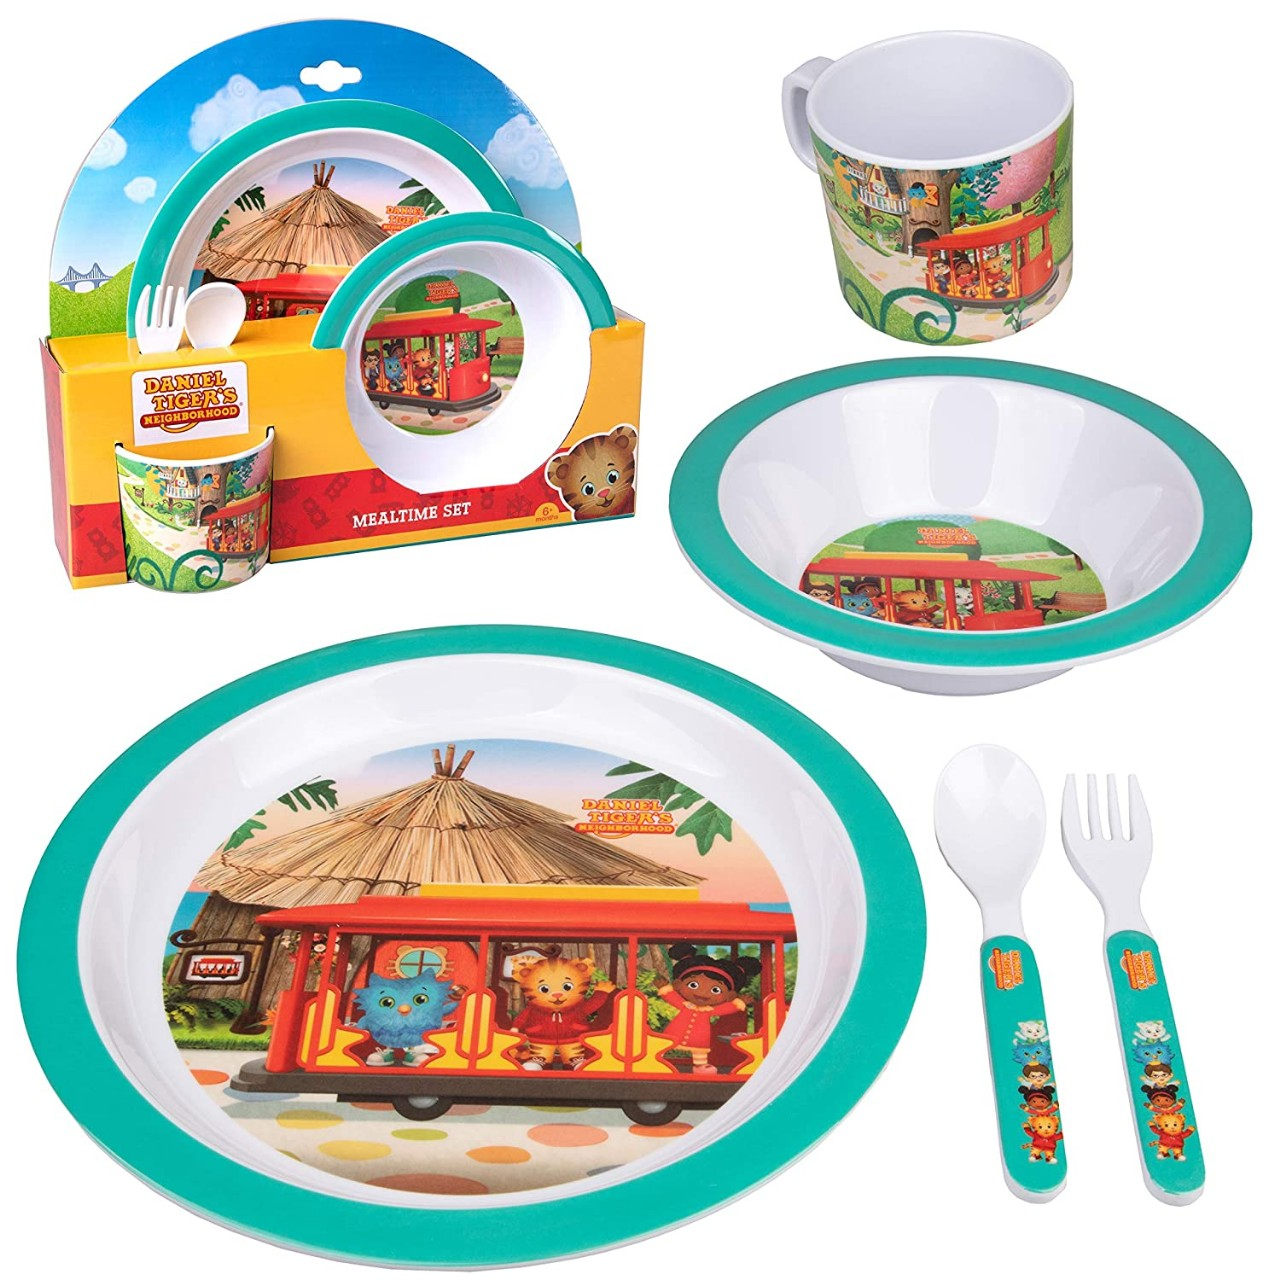 Daniel Tiger 5 Pc Mealtime Feeding Set for Kids and Toddlers - Includes Plate, Bowl, Cup, Fork